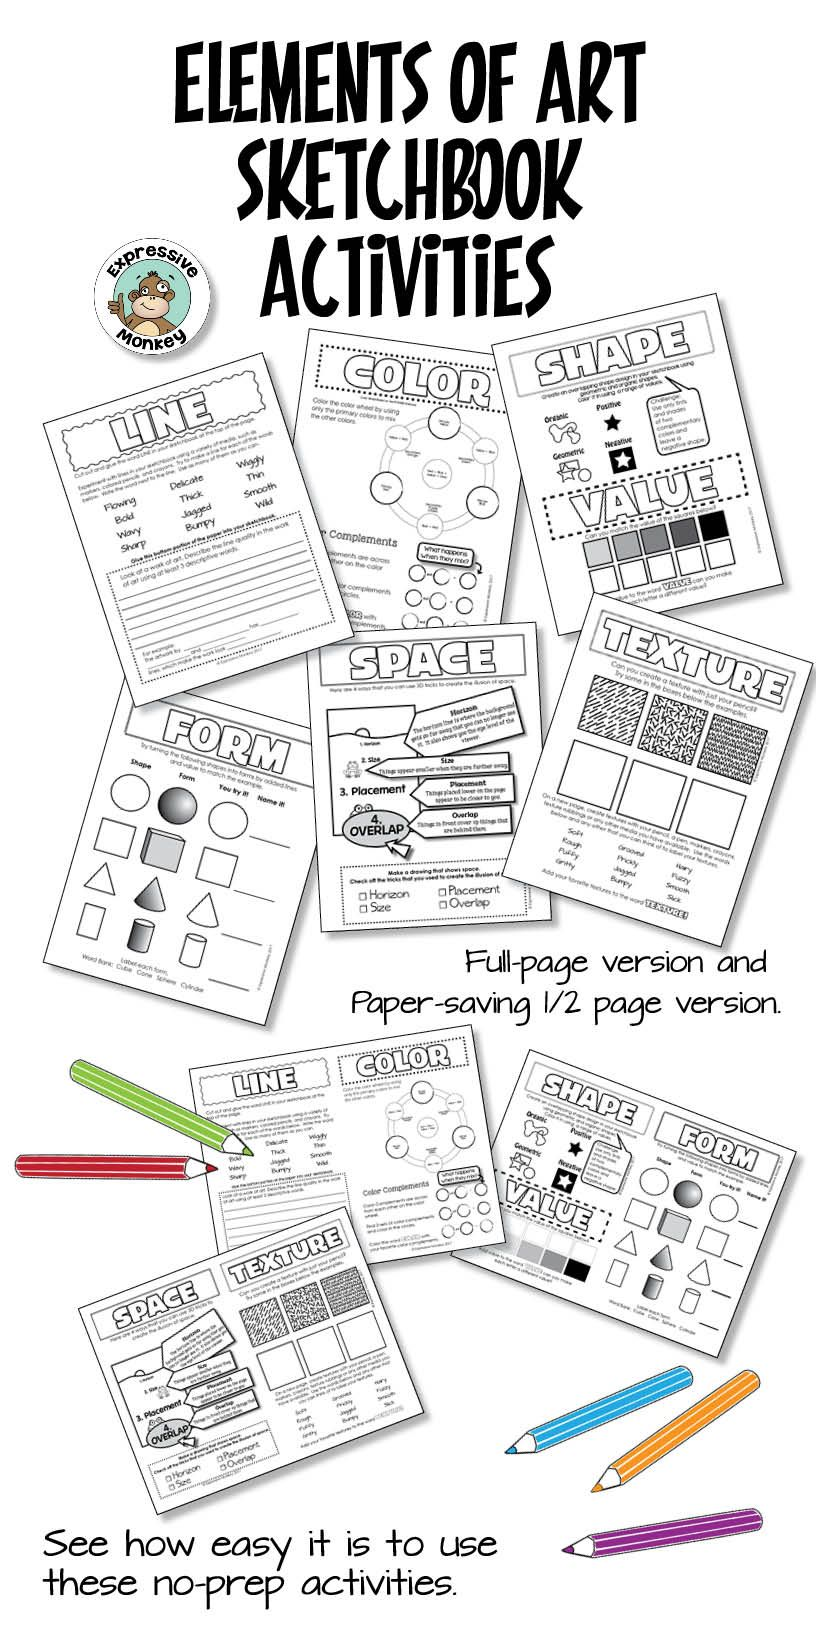 Teach The Elements Of Art With Ease Using These Sketchbook Activities They Make A Great Introduction Or Art Lessons Elementary Art Worksheets Art Curriculum [ 1632 x 816 Pixel ]